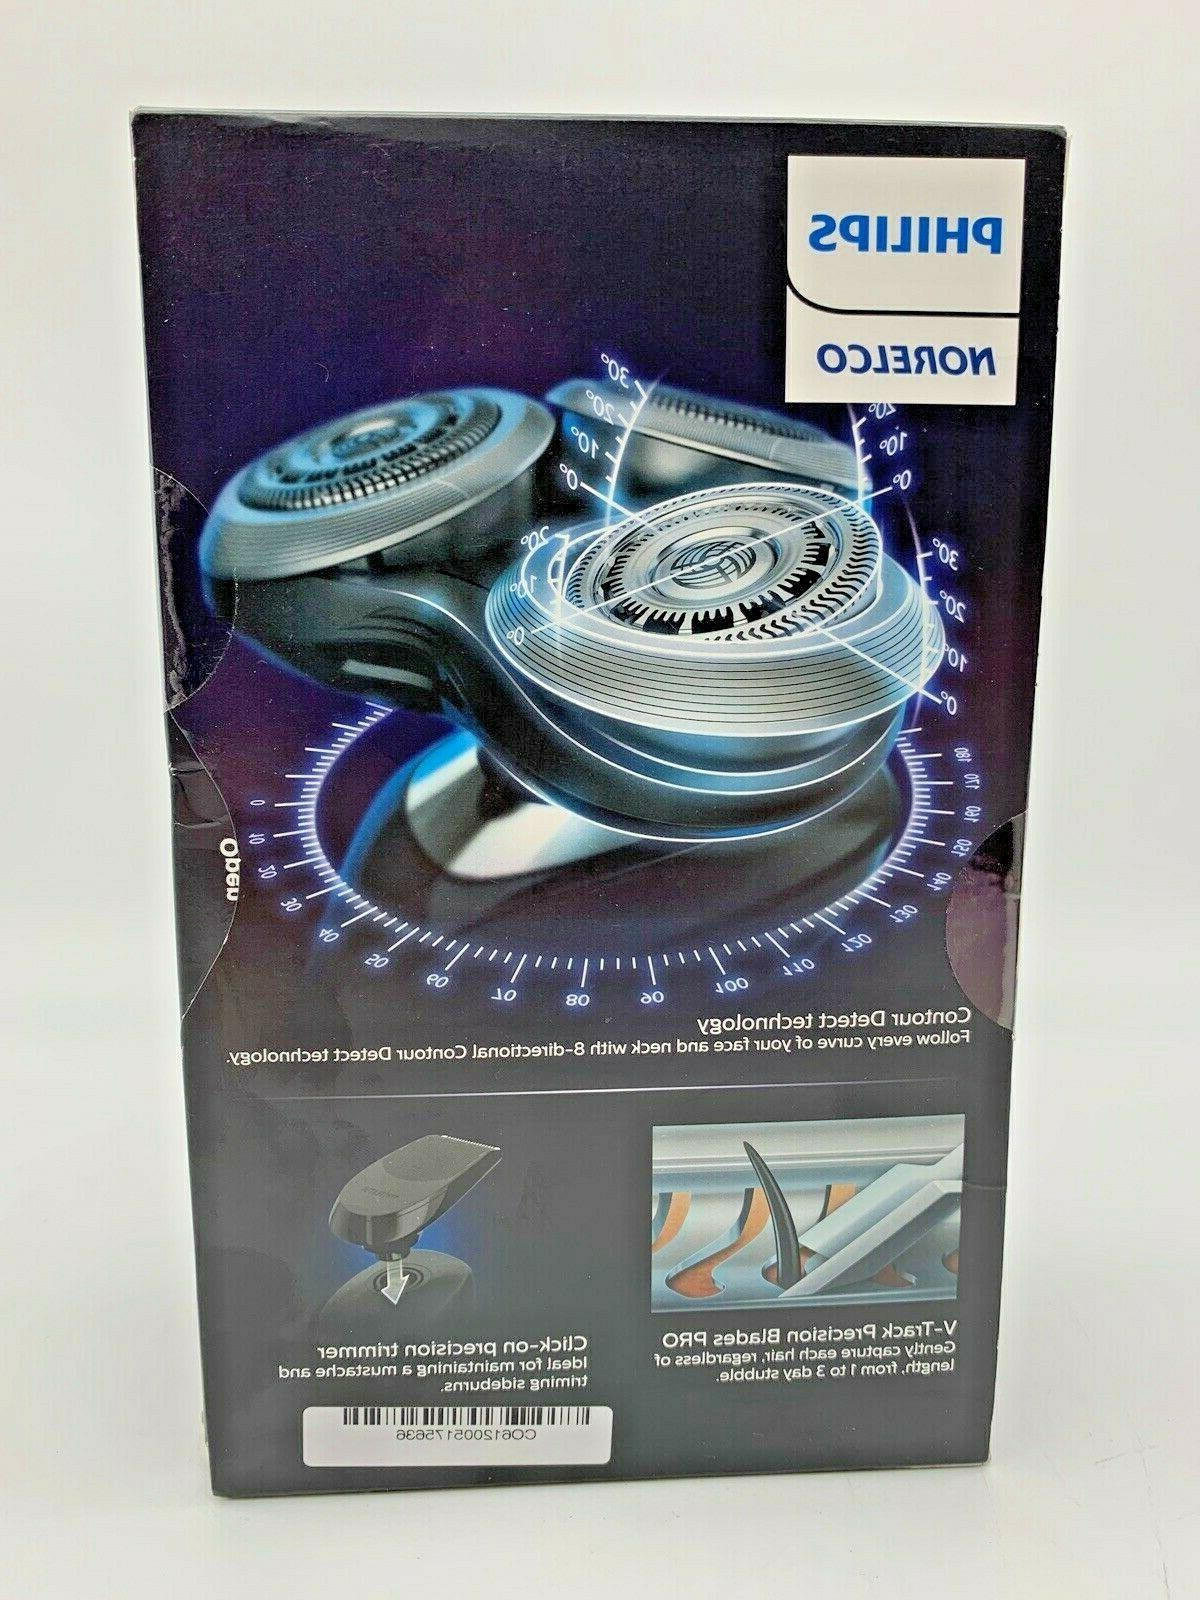 Philips Norelco Cordless Electric Precision Trimmer S9161/83